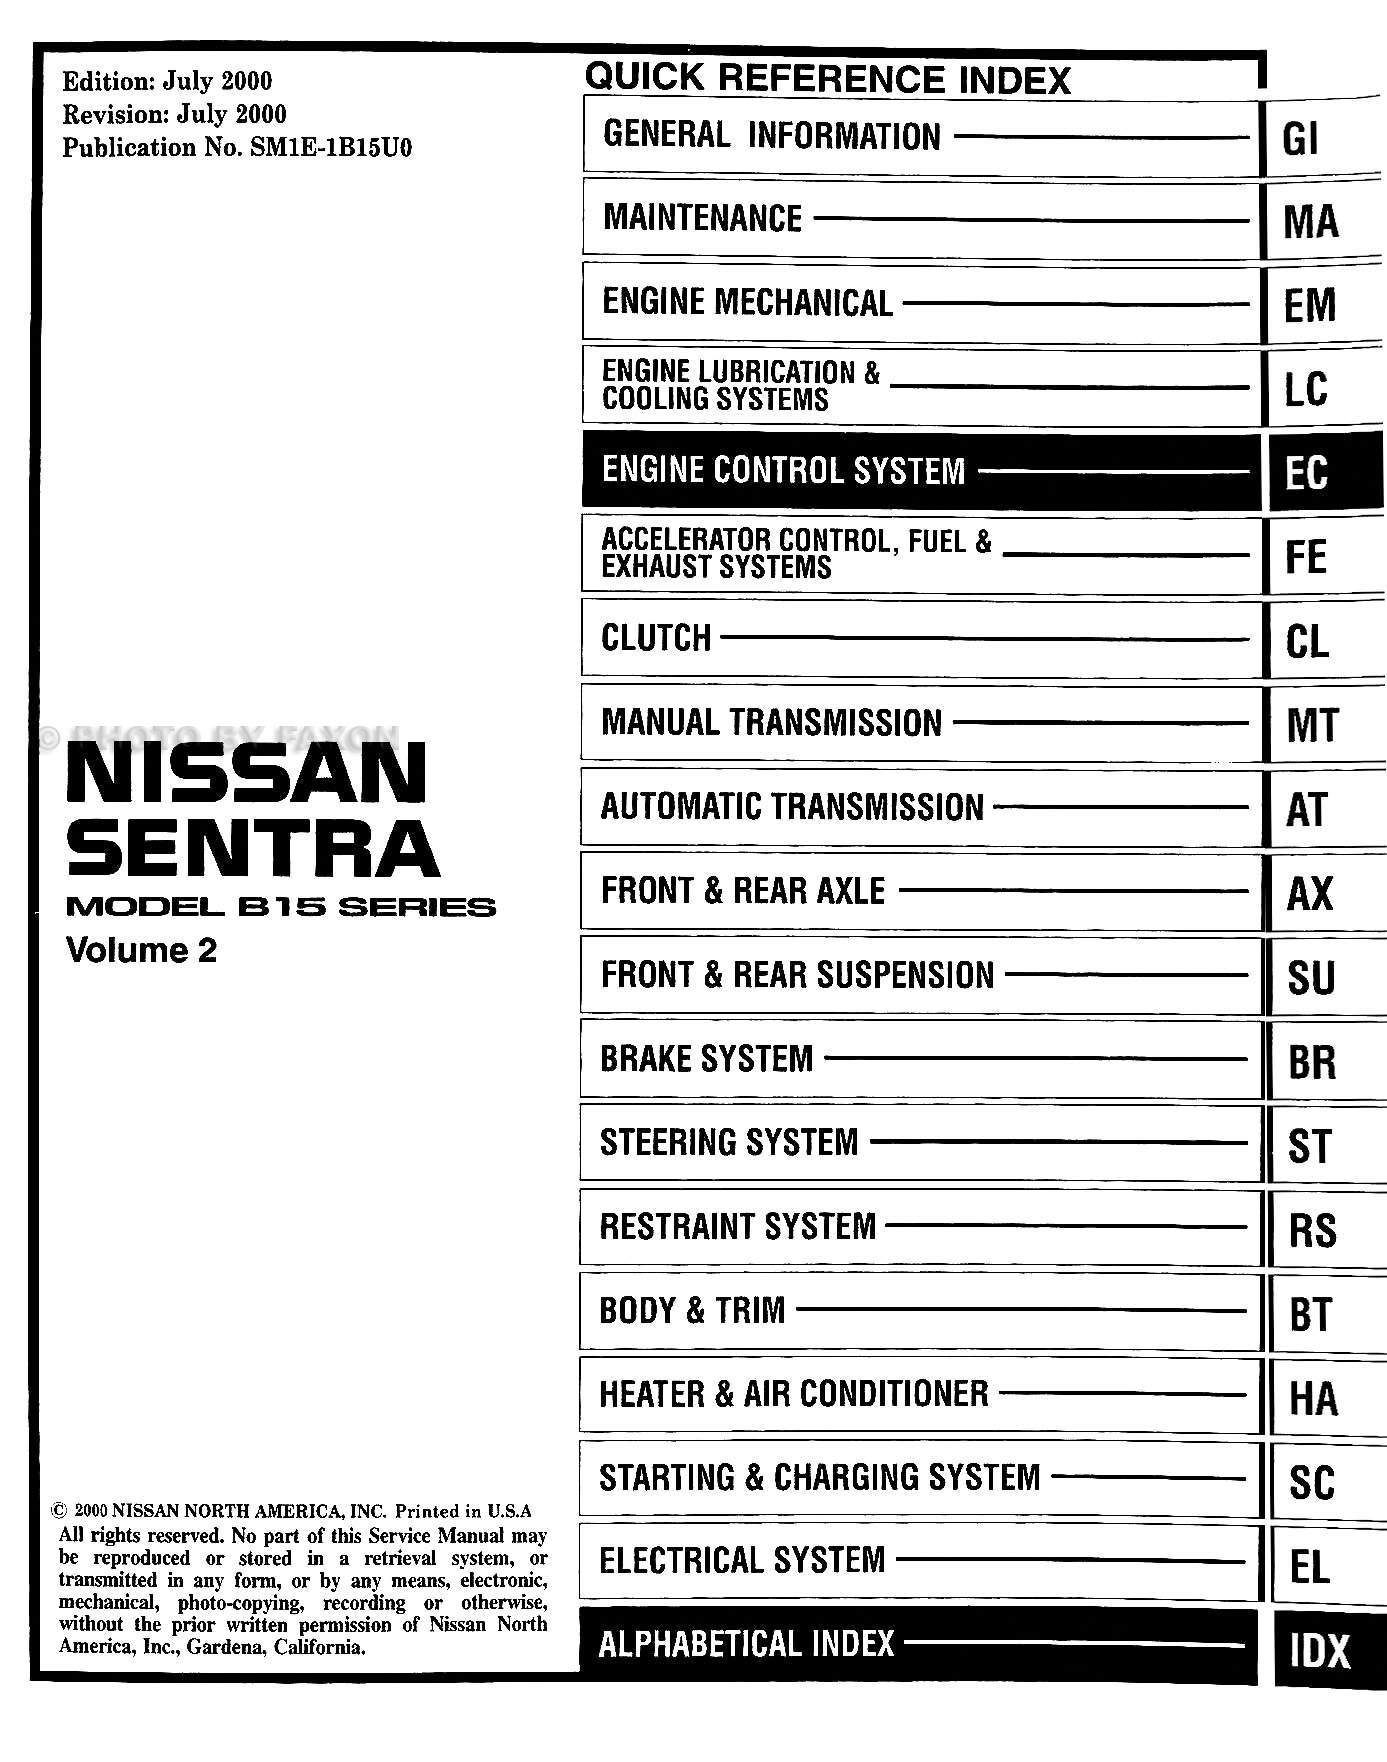 2001NissanSentraORMSet TOC 2001 nissan sentra cd rom repair shop manual 2004 nissan sentra 1.8 fuse box diagram at suagrazia.org